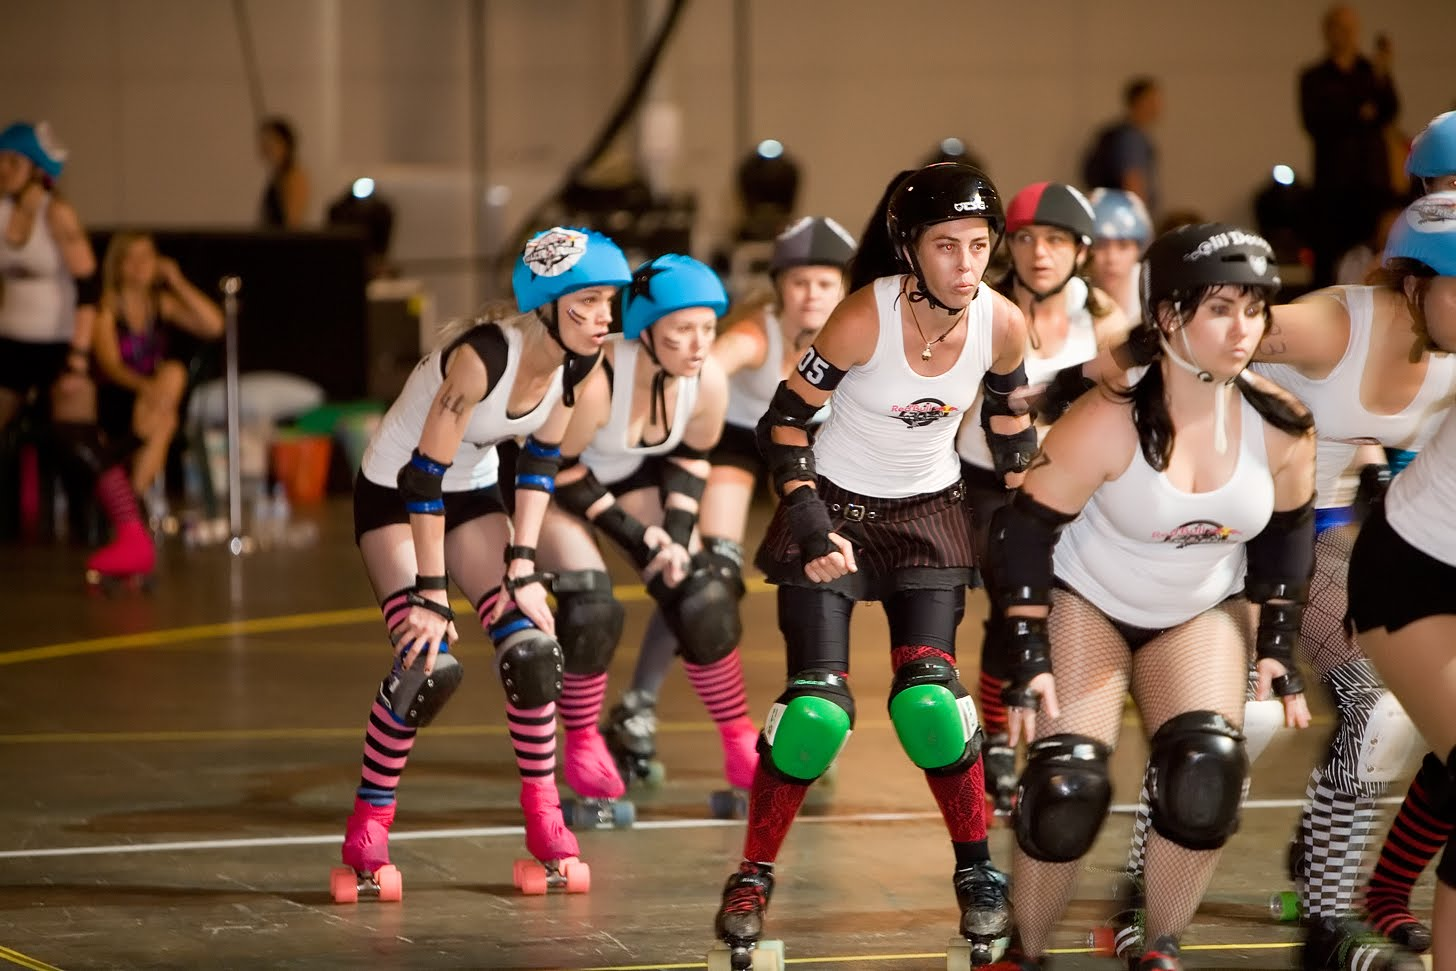 Trojan classic motorcycles sws rockets roller derby league i had no idea this was going on just faint memories of old movies i used to watch remind me of roller derby now check out these girls flat tracking on m4hsunfo